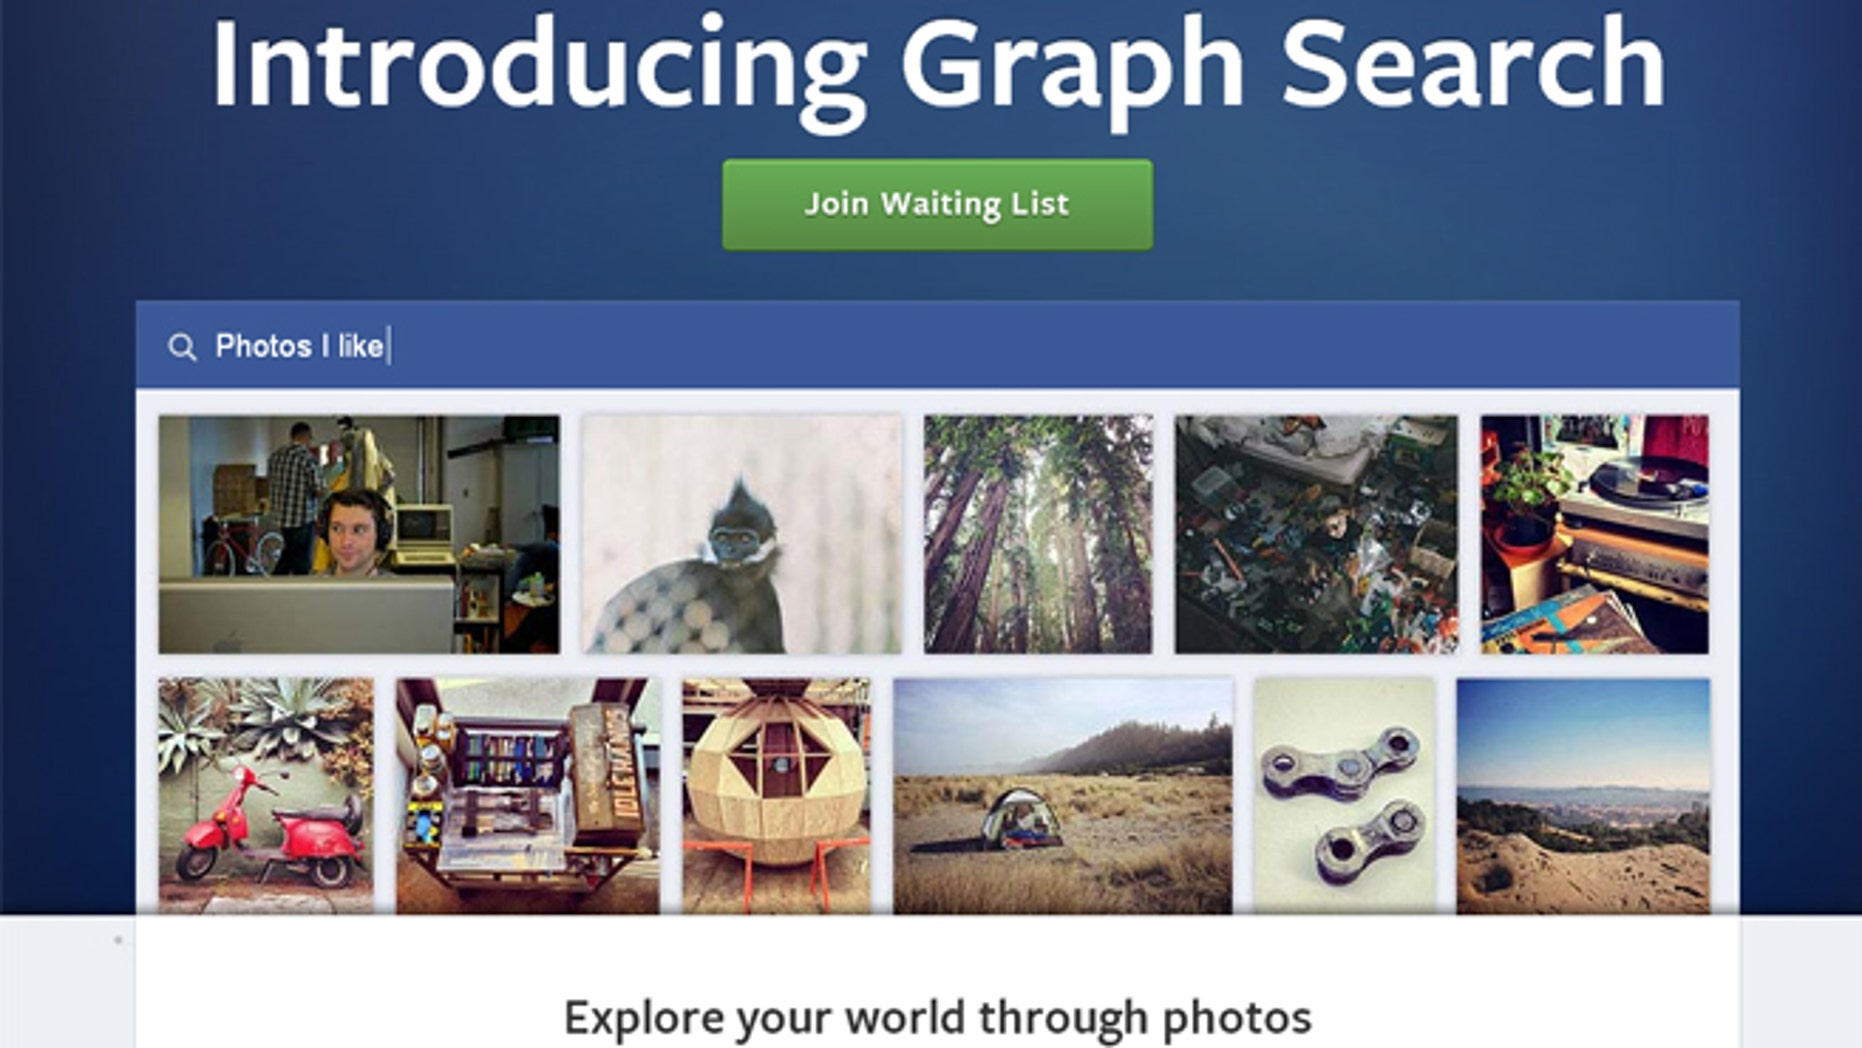 Facebook's new search engine allows users to search their Facebook social graph for people, places, photos and interests.